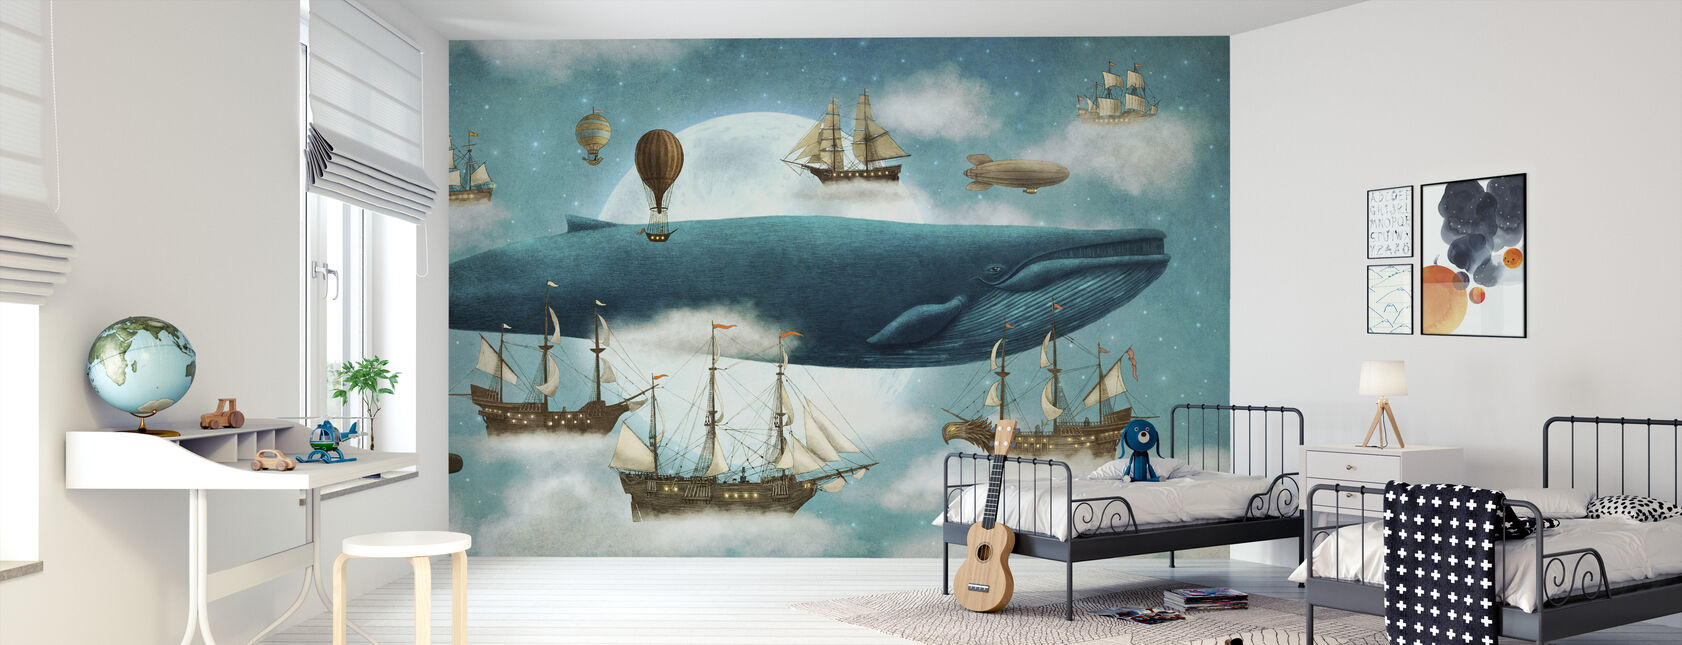 Ocean Meets Sky - Wallpaper - Kids Room